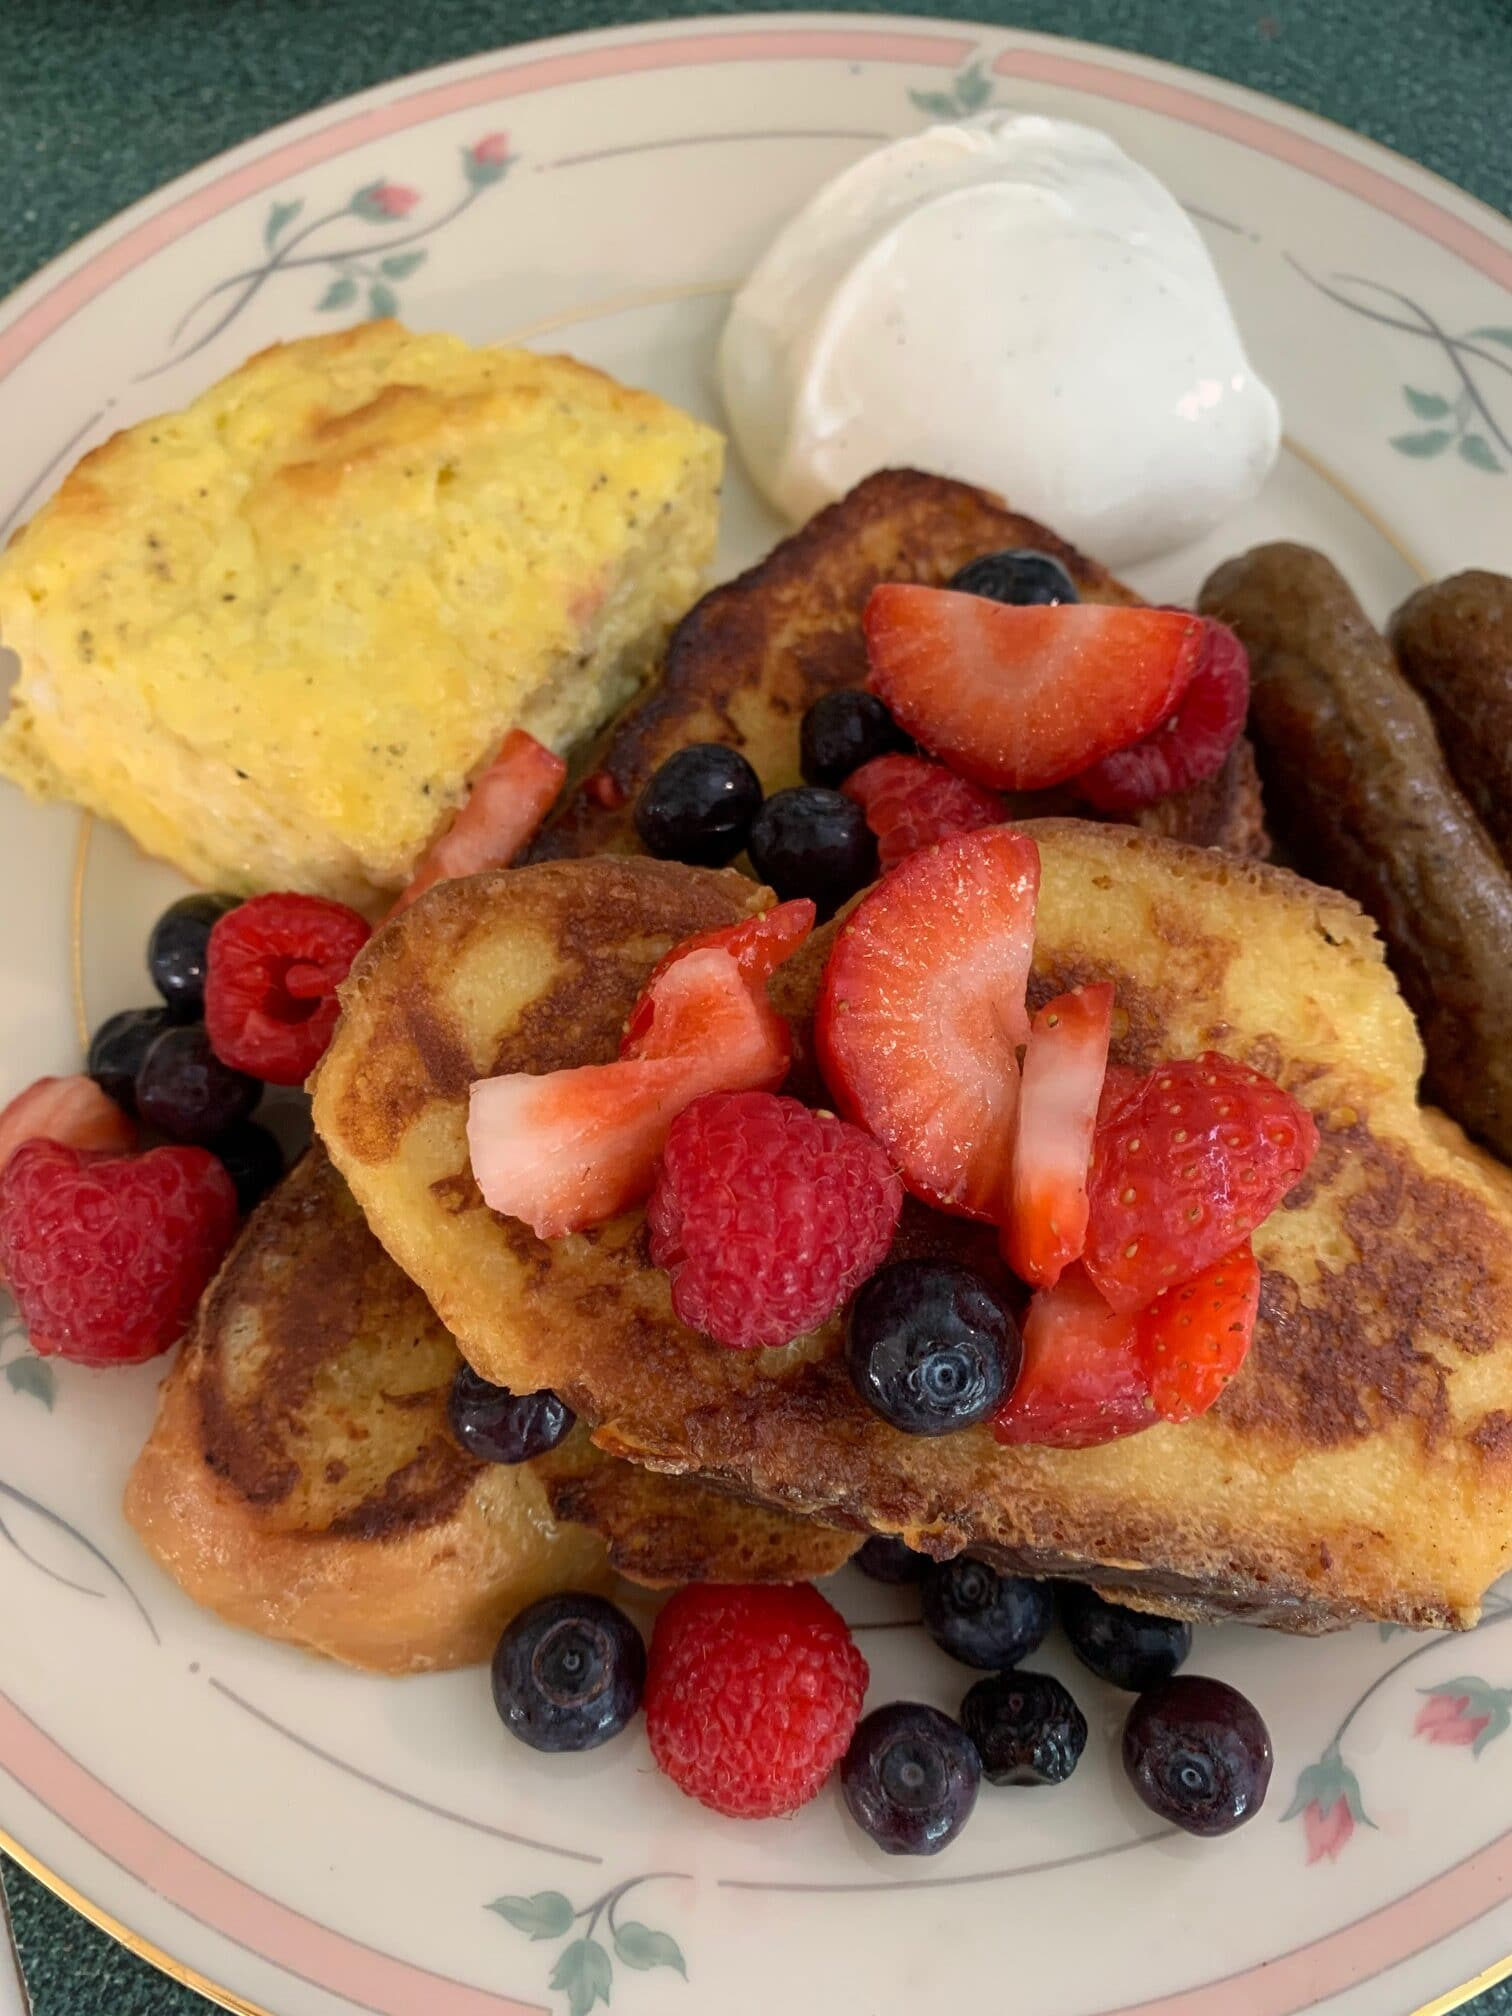 a plate of breakfast food like eggs, french toast, and yogurt with berries